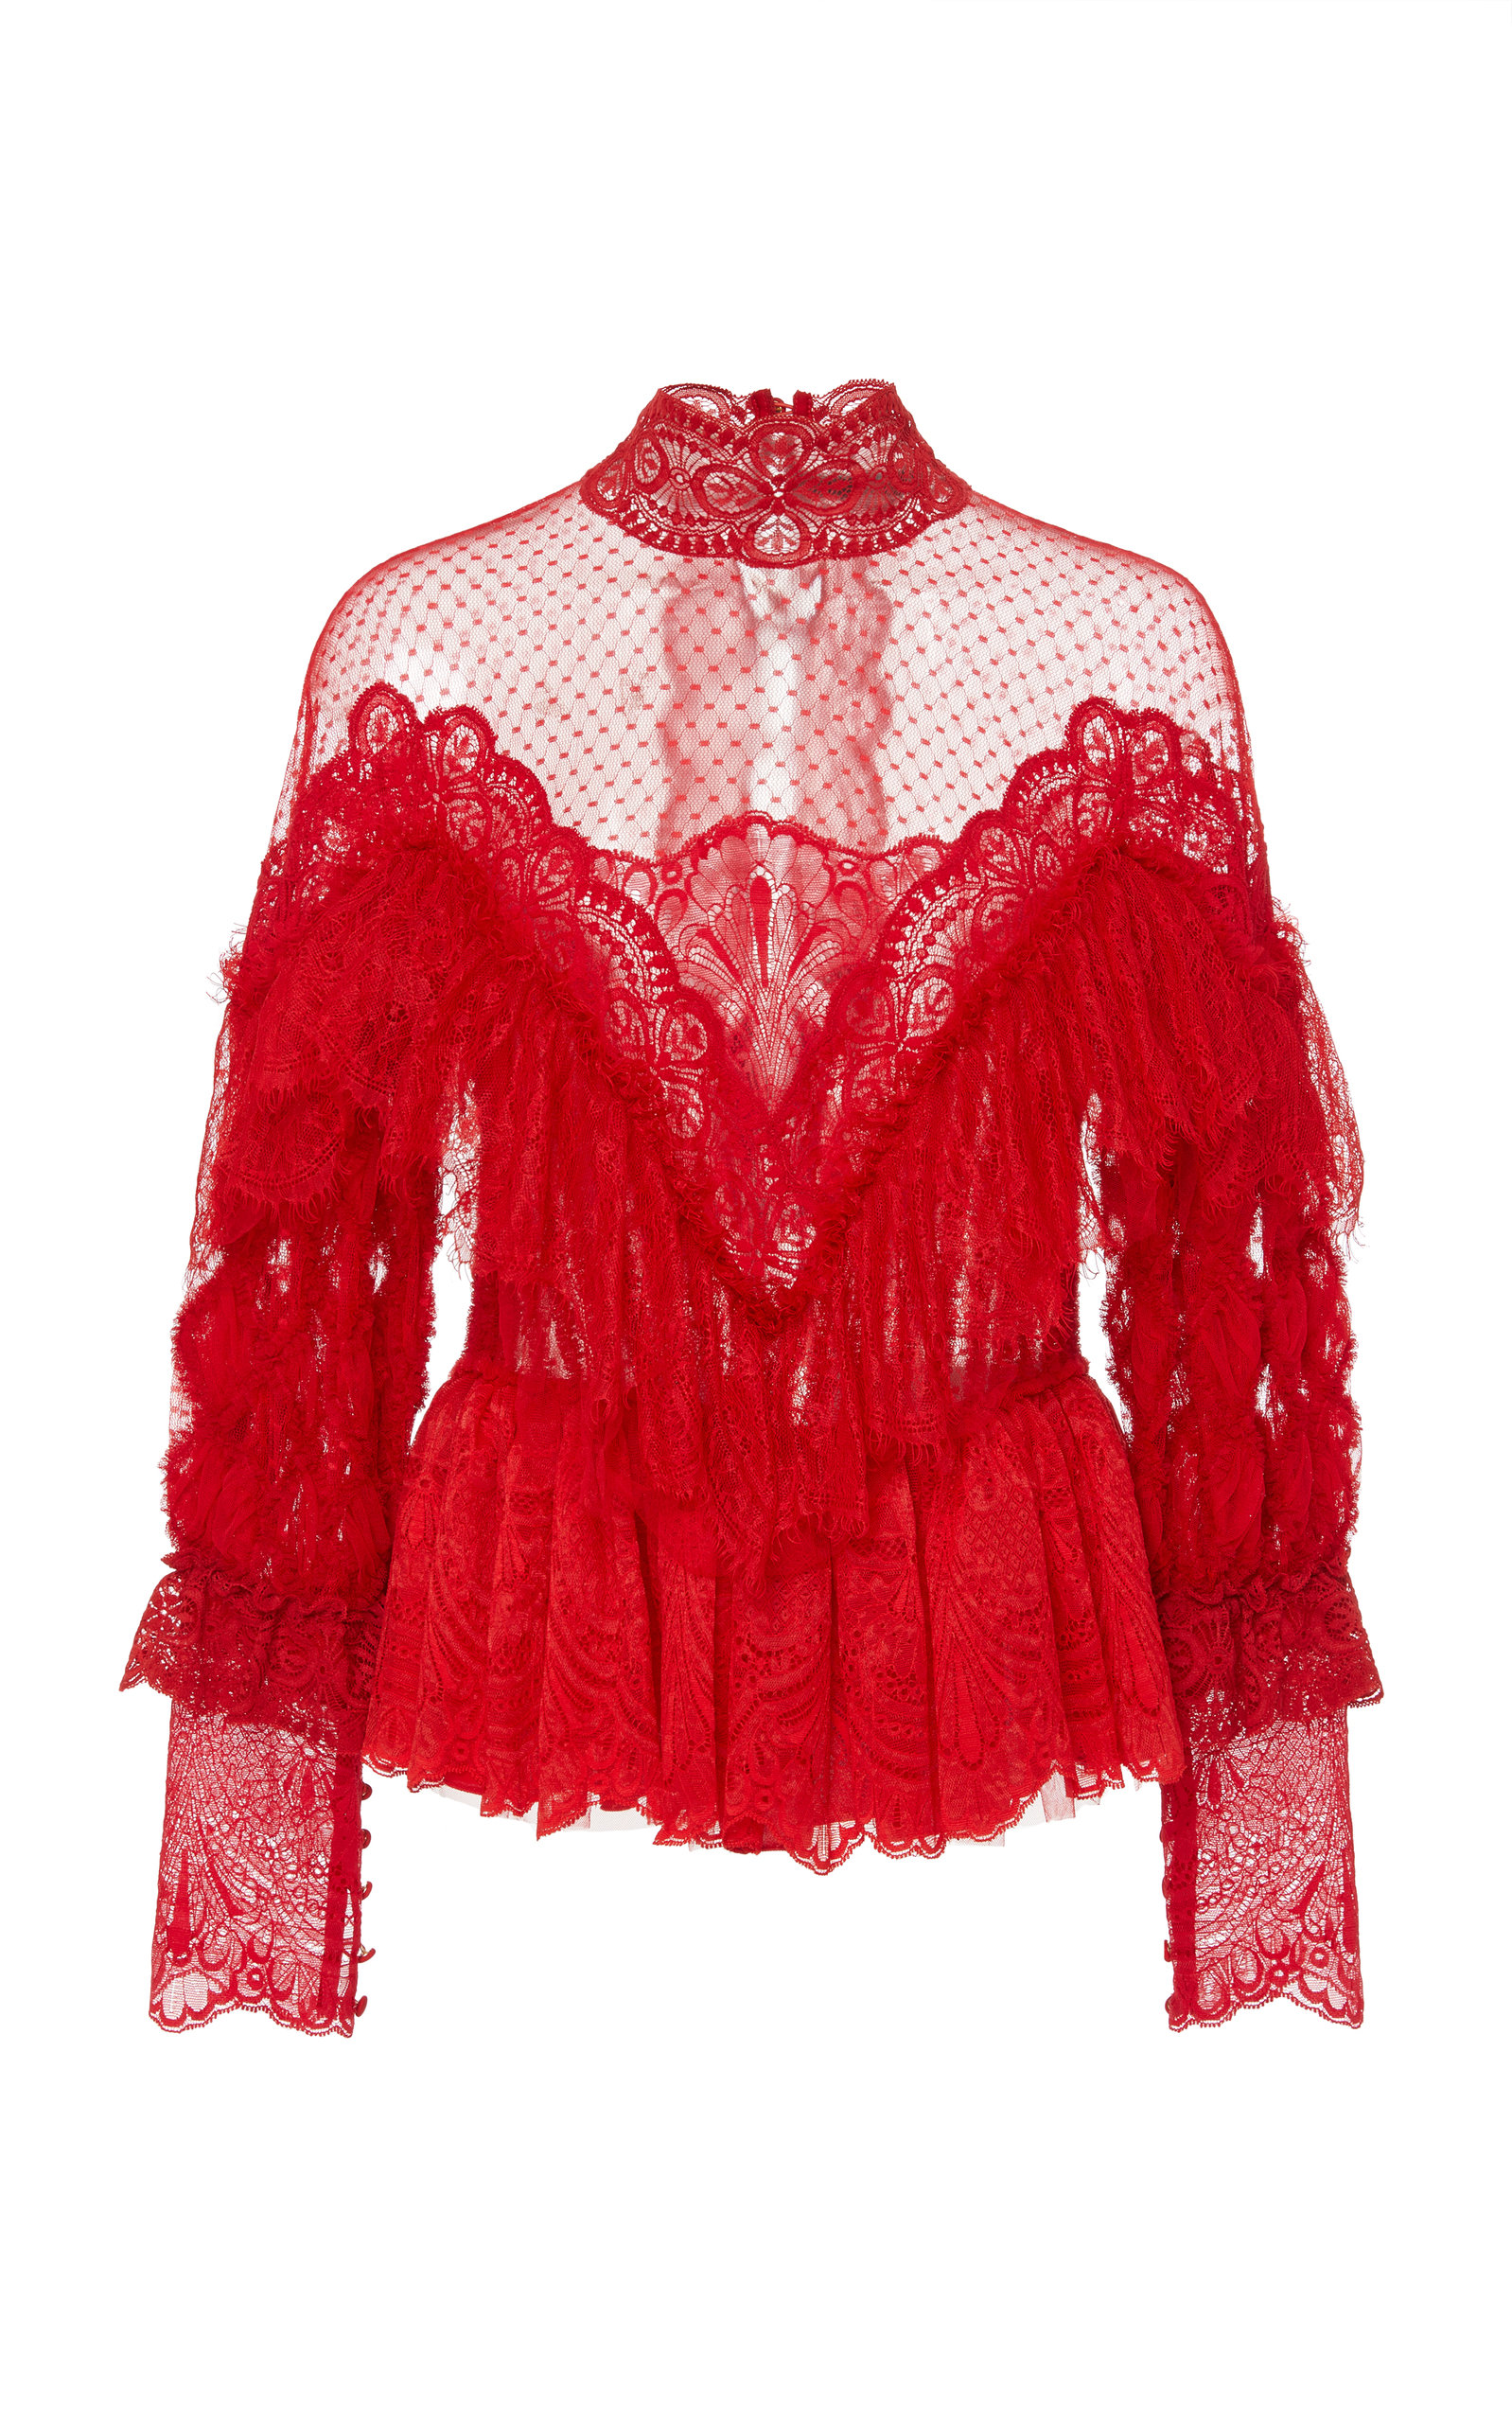 AMEN COUTURE Ruffle Lace Blouse in Red